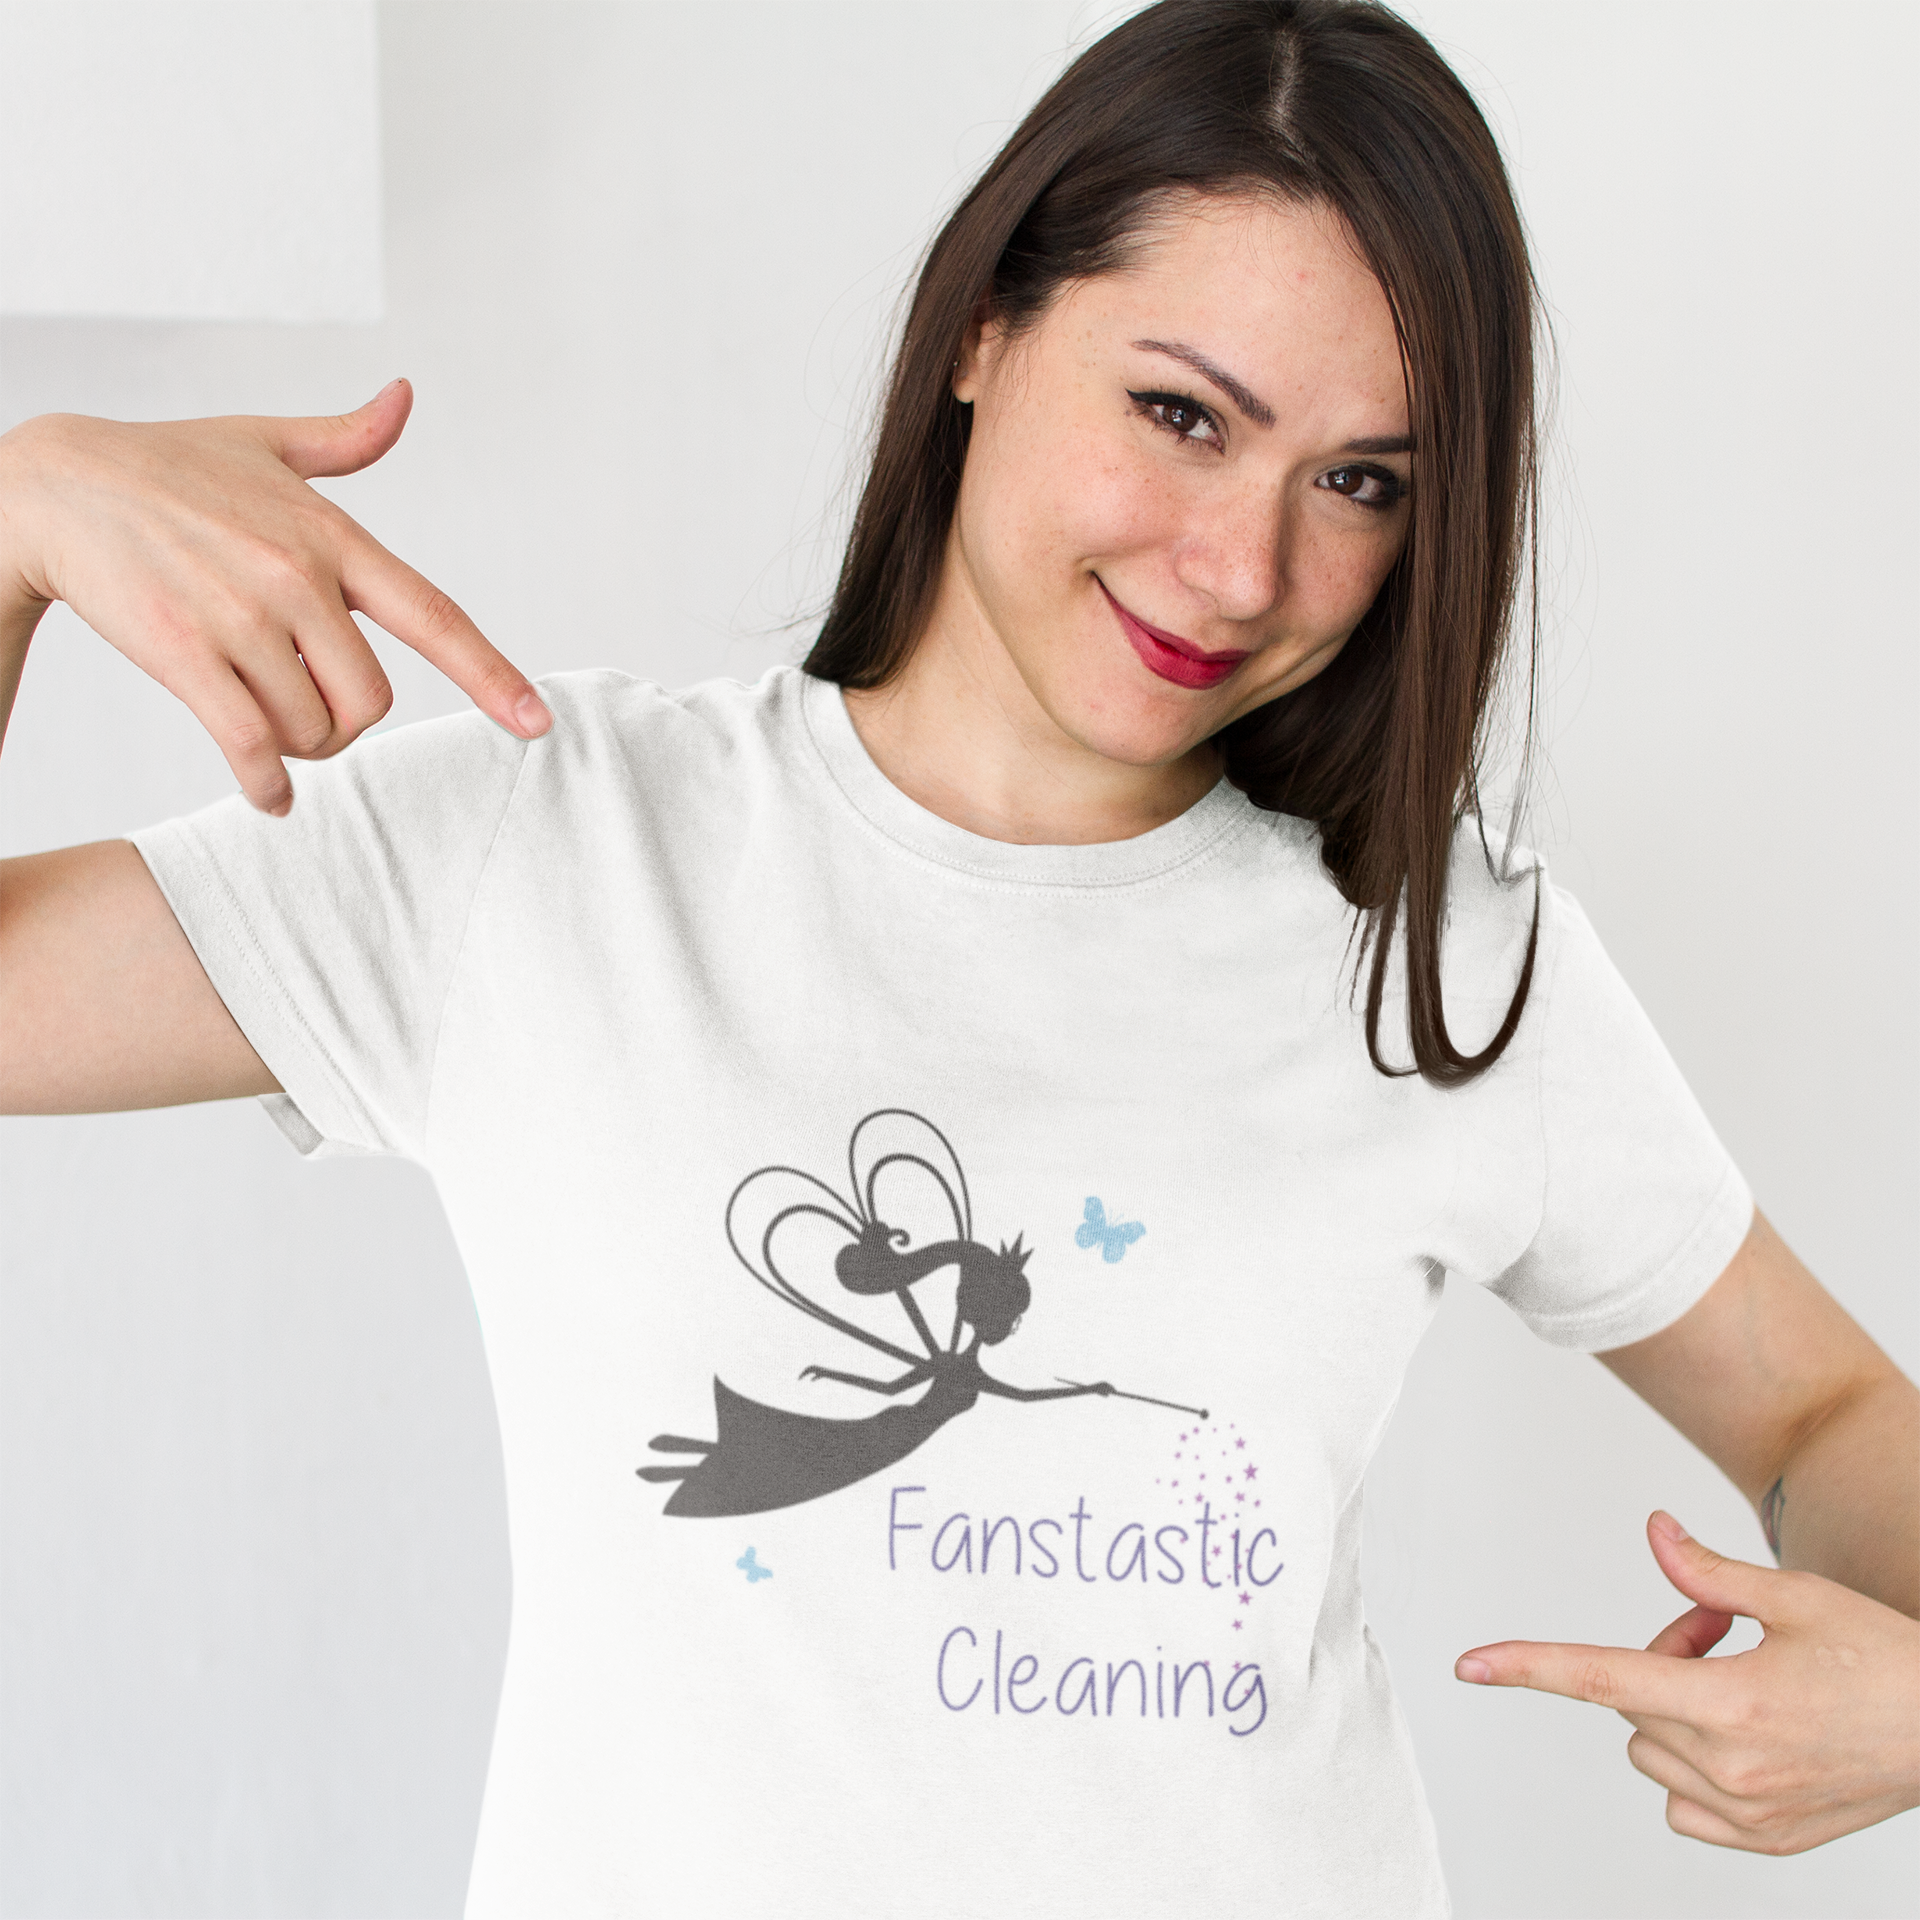 fanstastic cleaning tshirt